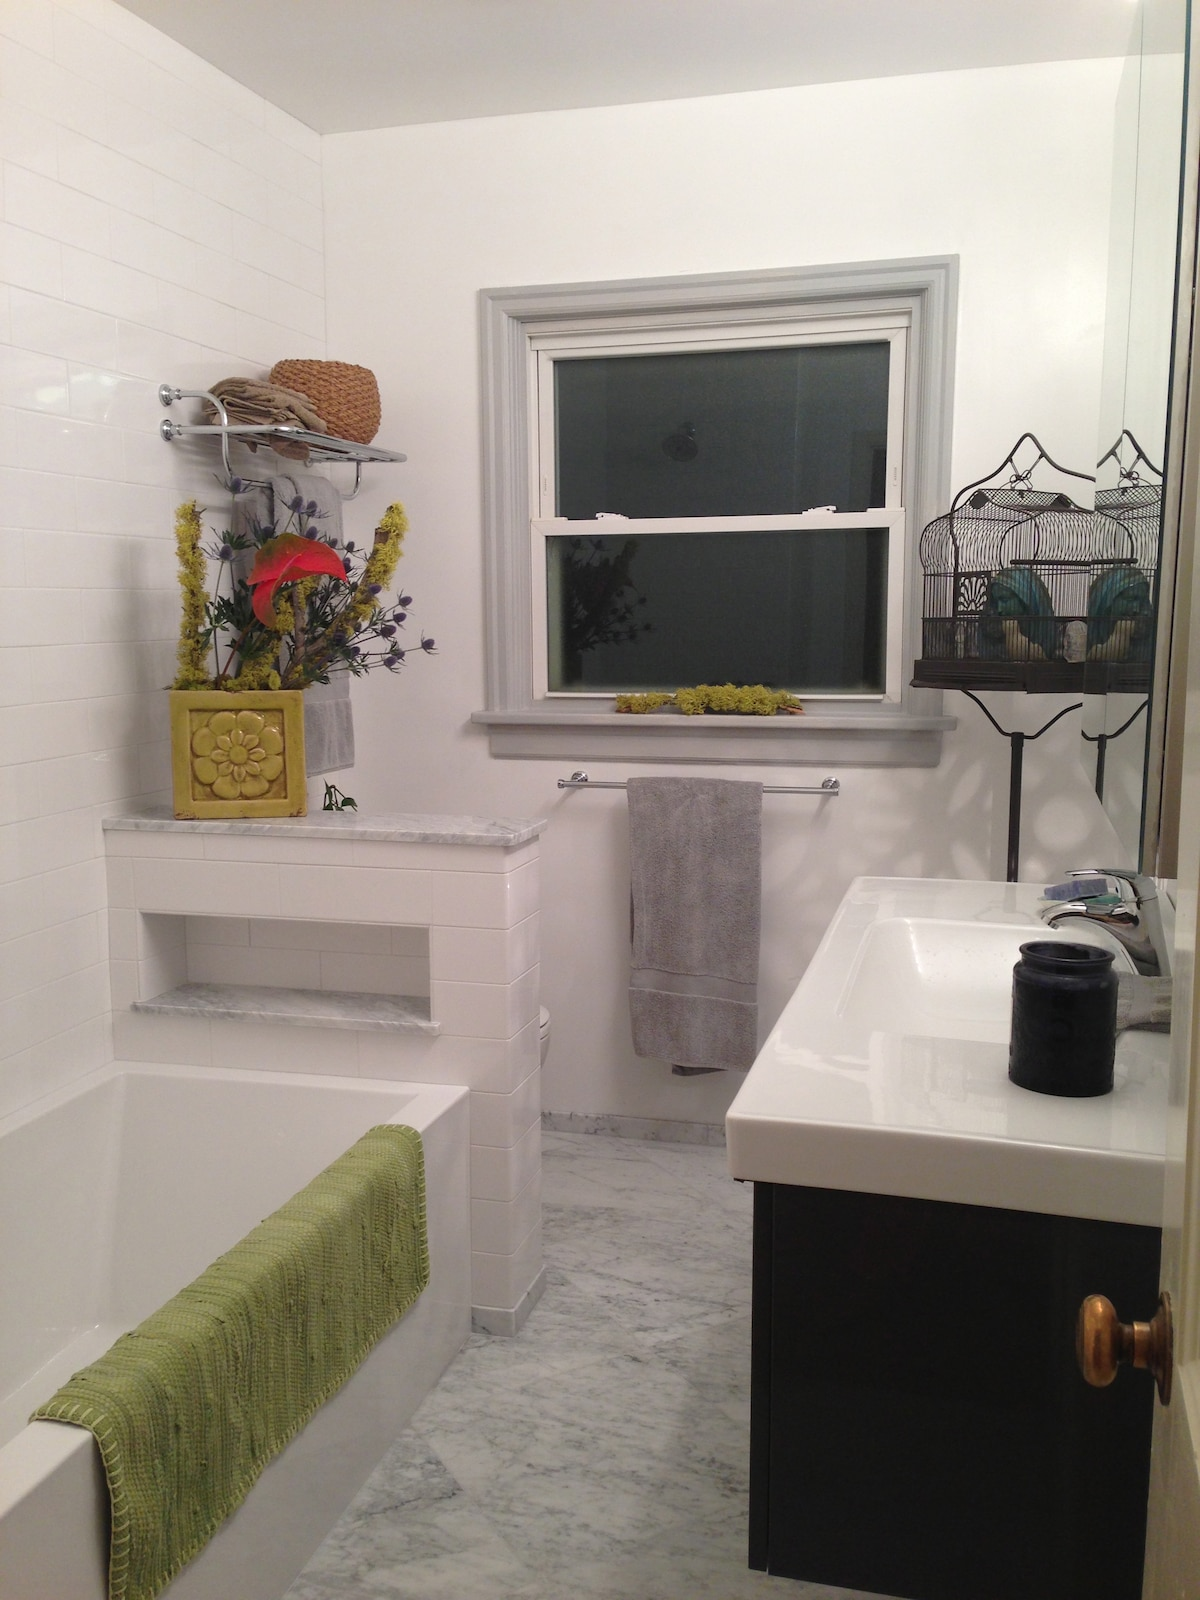 First floor bathroom for (website hidden) Guests.  There is plenty of space for your items while you stay.  Plus fresh towels and epsom salts should you want to take a bath!